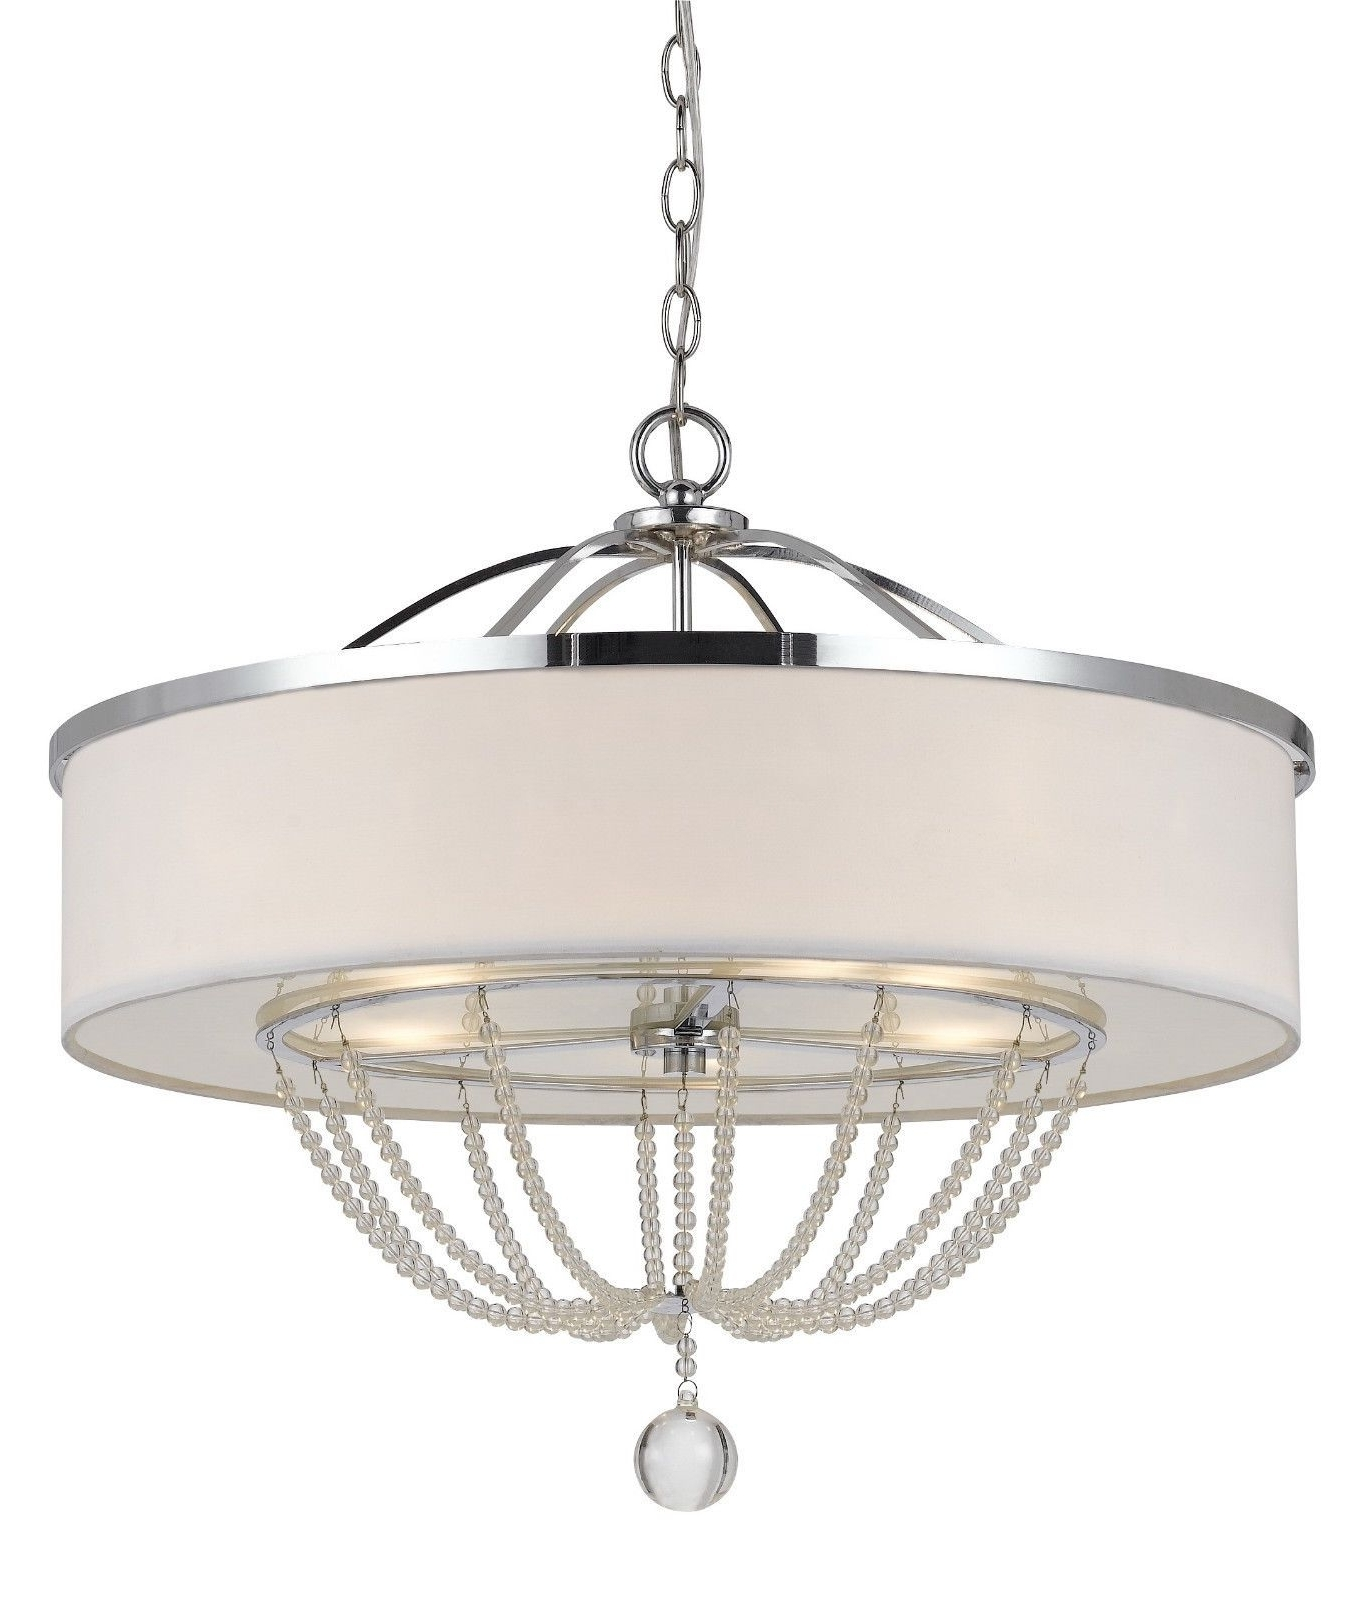 Preferred Metal Drum Chandeliers In Modern White Fabric With Chrome Metal & Crystals Drum Pendant Light (View 19 of 20)